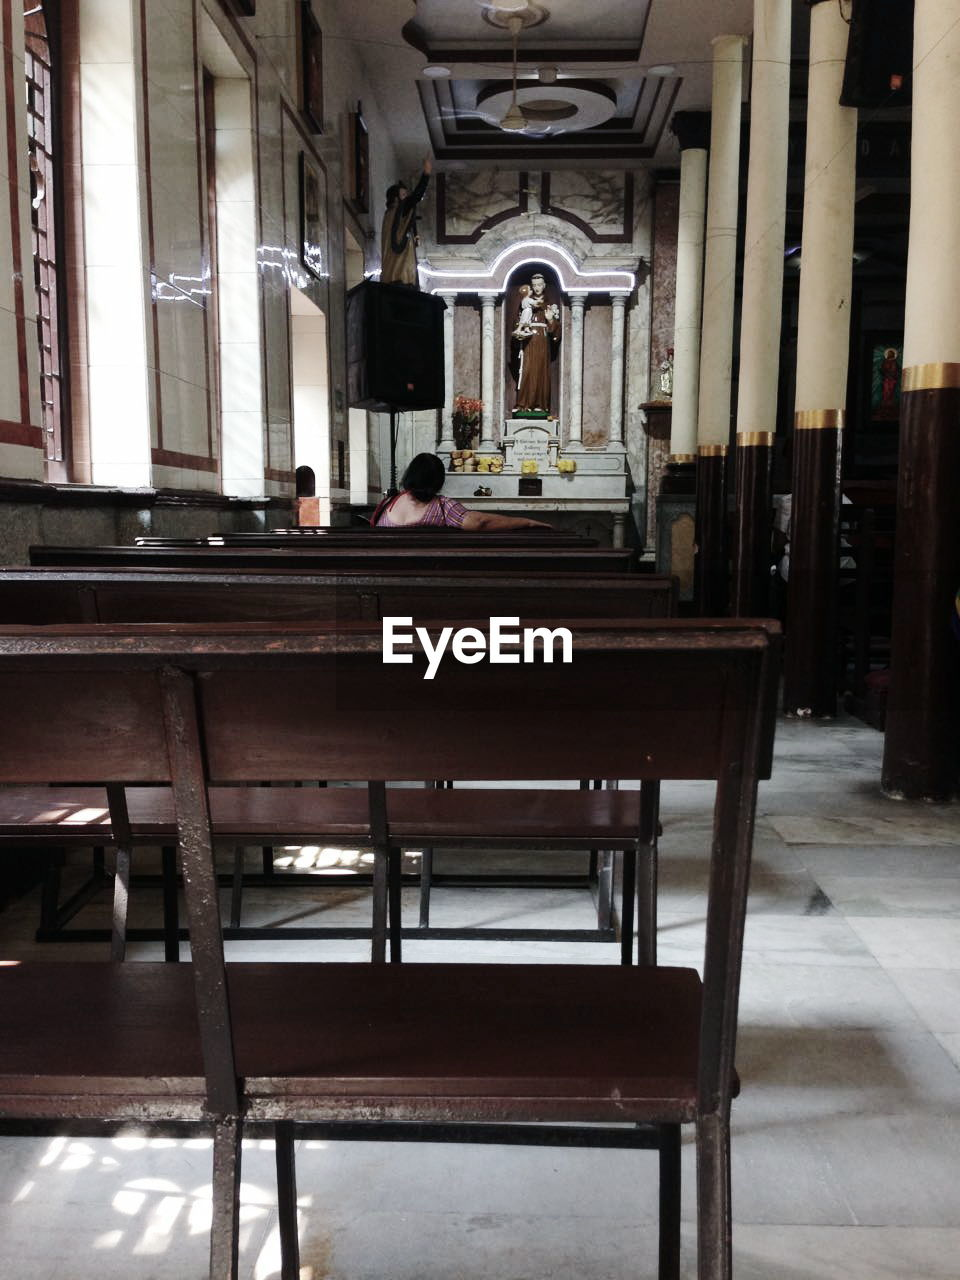 indoors, spirituality, pew, place of worship, architecture, chair, real people, religion, men, sitting, day, one person, people